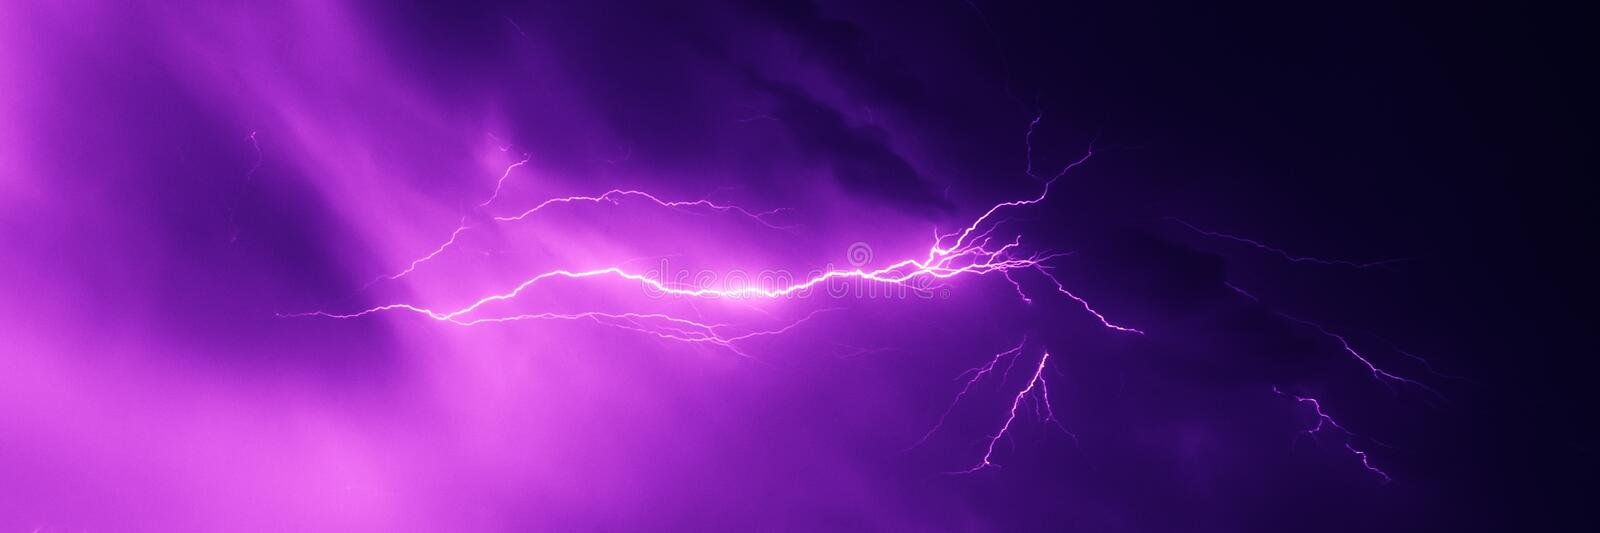 Lightning strike in the night sky stock images